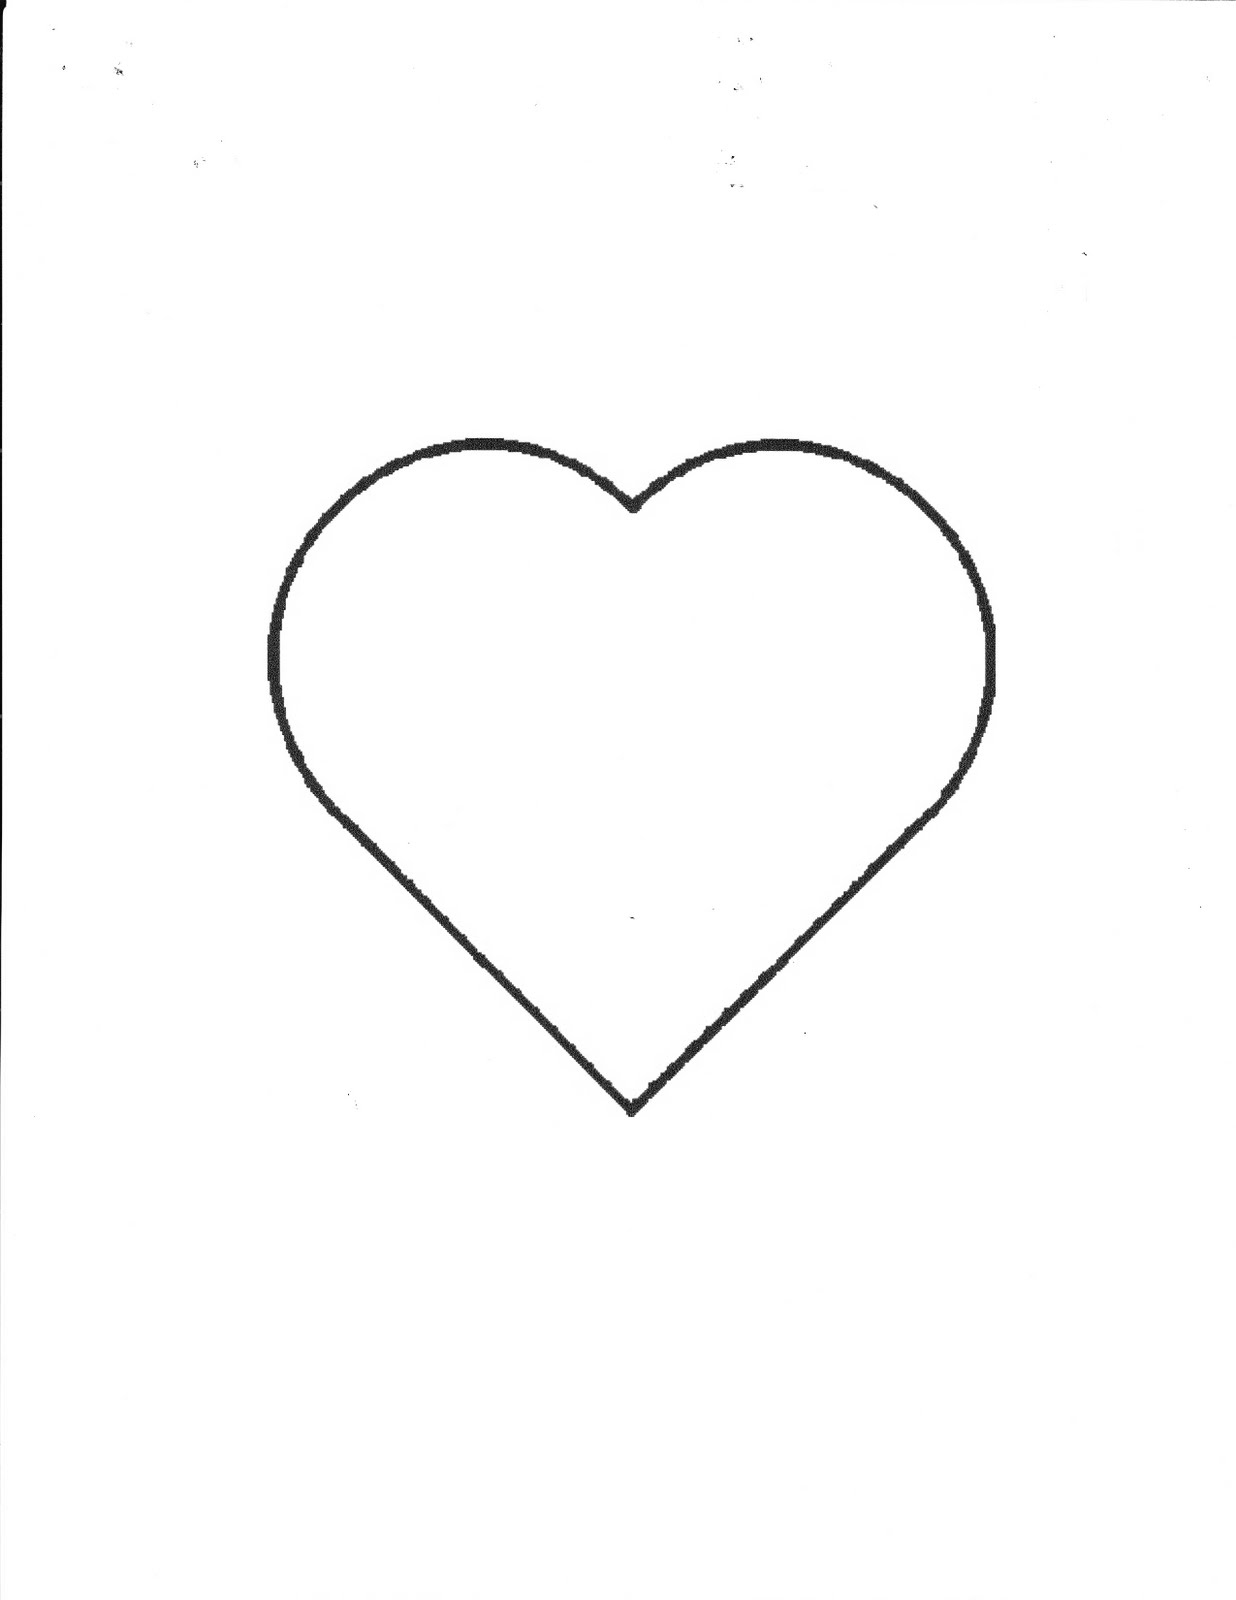 13 Easy To Draw Heart Designs Images - Tribal Heart Tattoo ... Easy Heart Designs To Draw